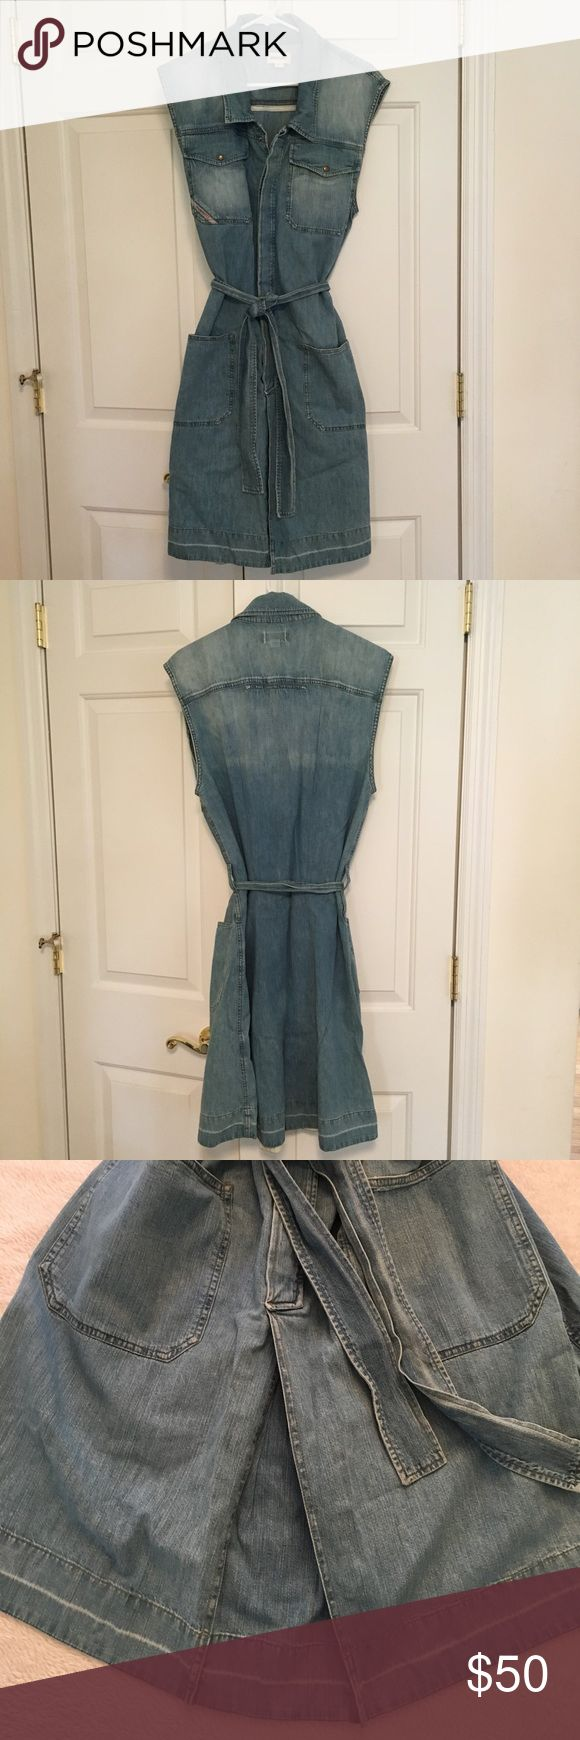 Cute denim dress from Diesel perfect for Fall Sleeveless denim dress from Diesel, hidden placket snap-front to waist, single pleat in front, knee-length. Comes with self-belt but wouldn't it be awesome with brown leather belt and boots. Maybe worn once, maybe never. (Original price is a guess, it's been awhile) Diesel Dresses Midi